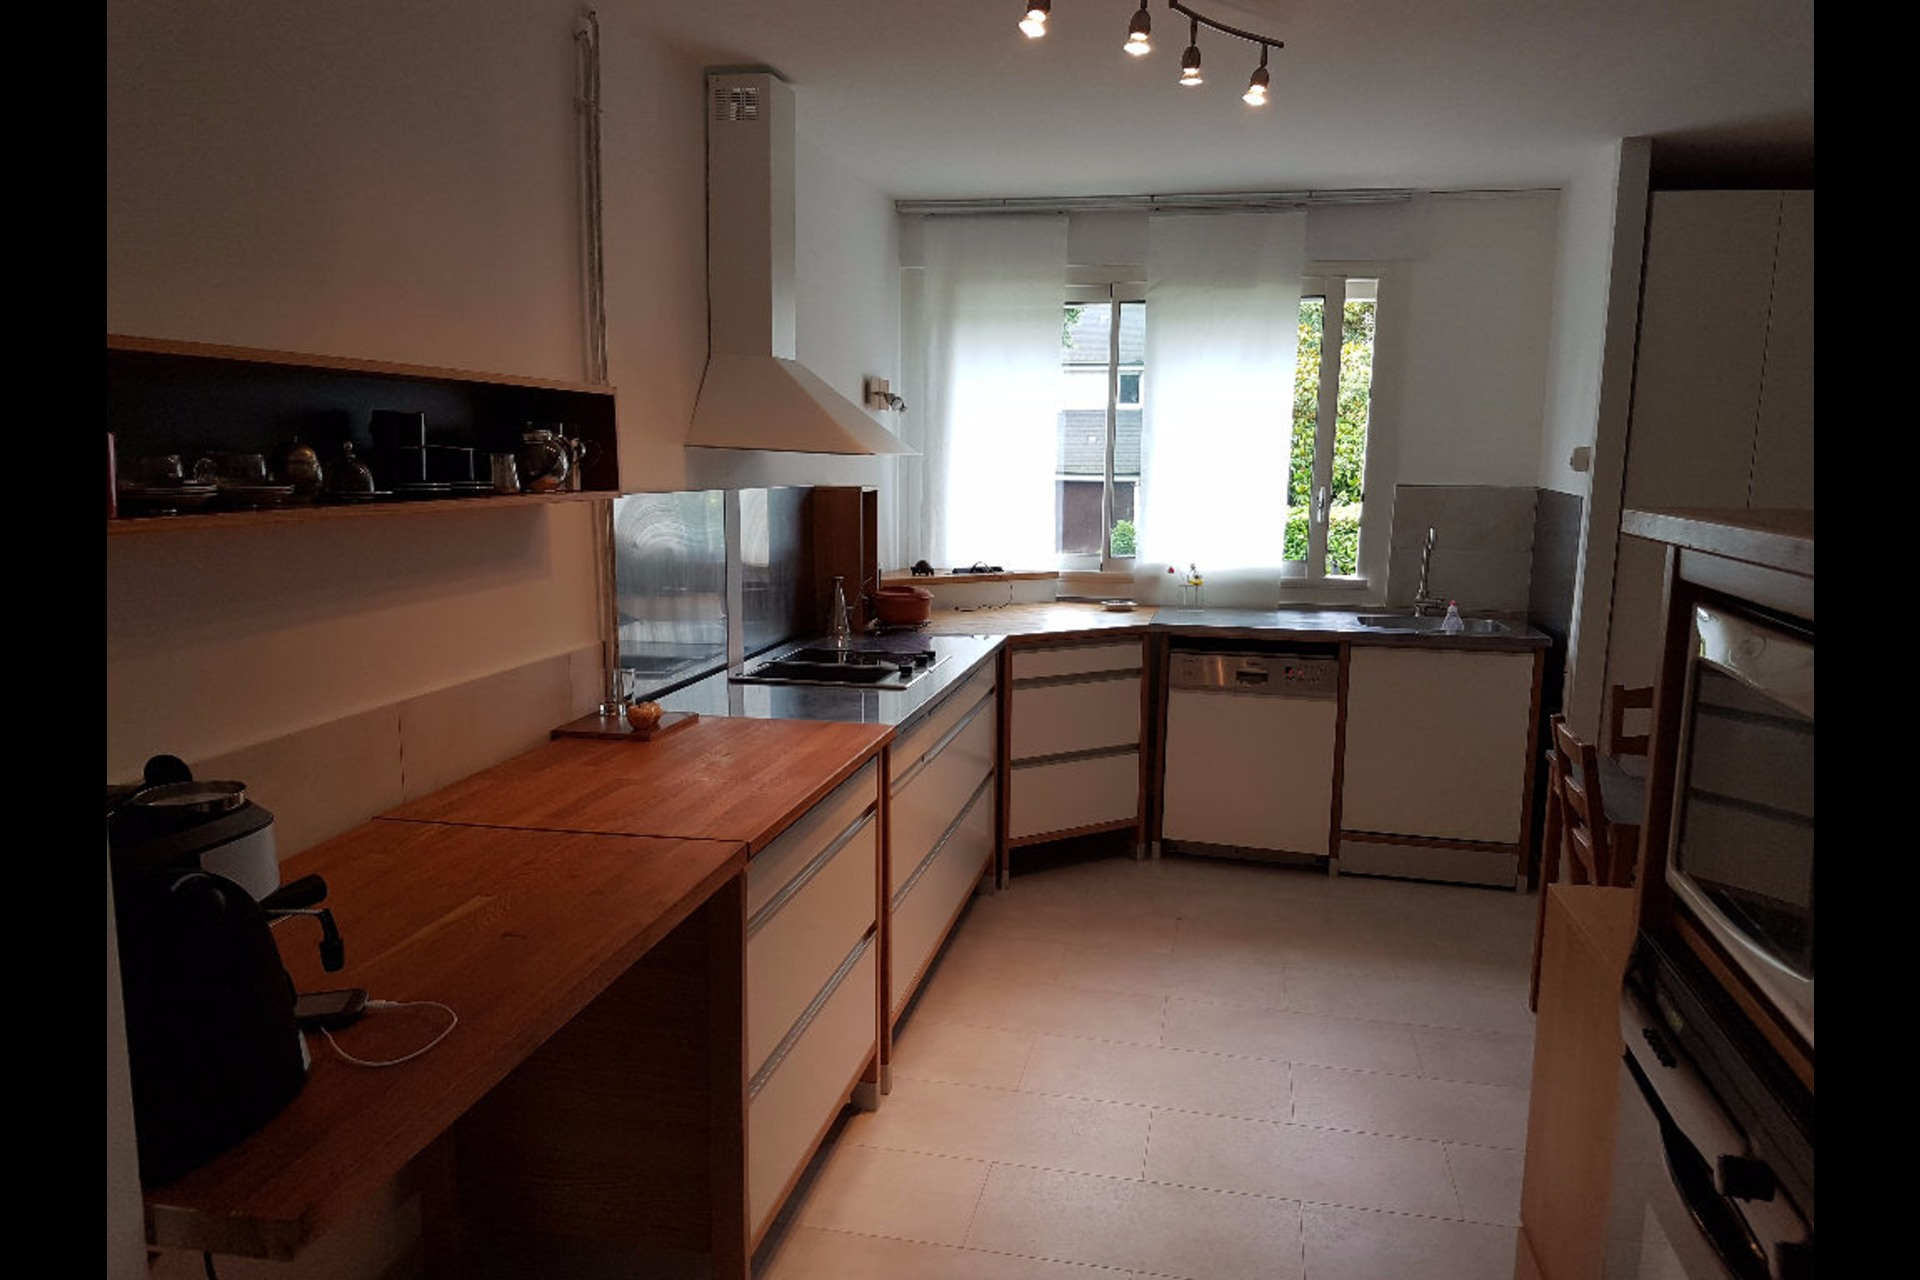 image 3 - Apartment For sale saint nom la breteche - 4 rooms